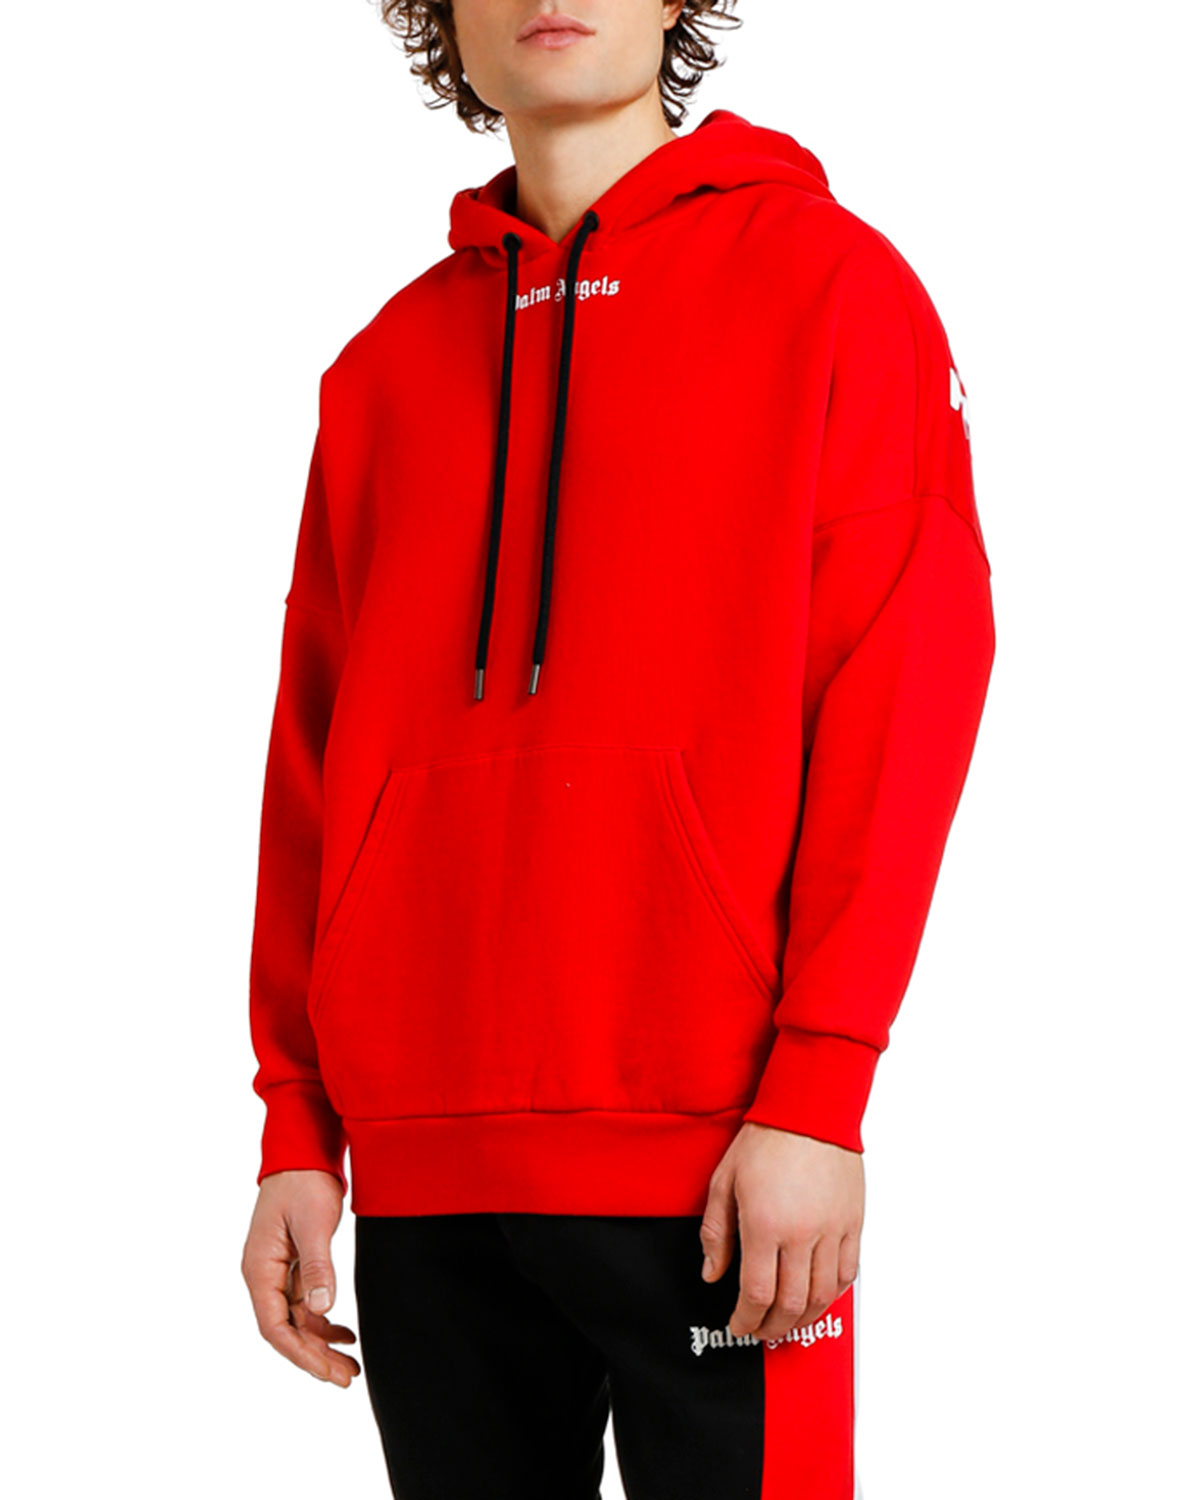 Palm Angels Tops MEN'S LOGO OVER PULLOVER HOODIE